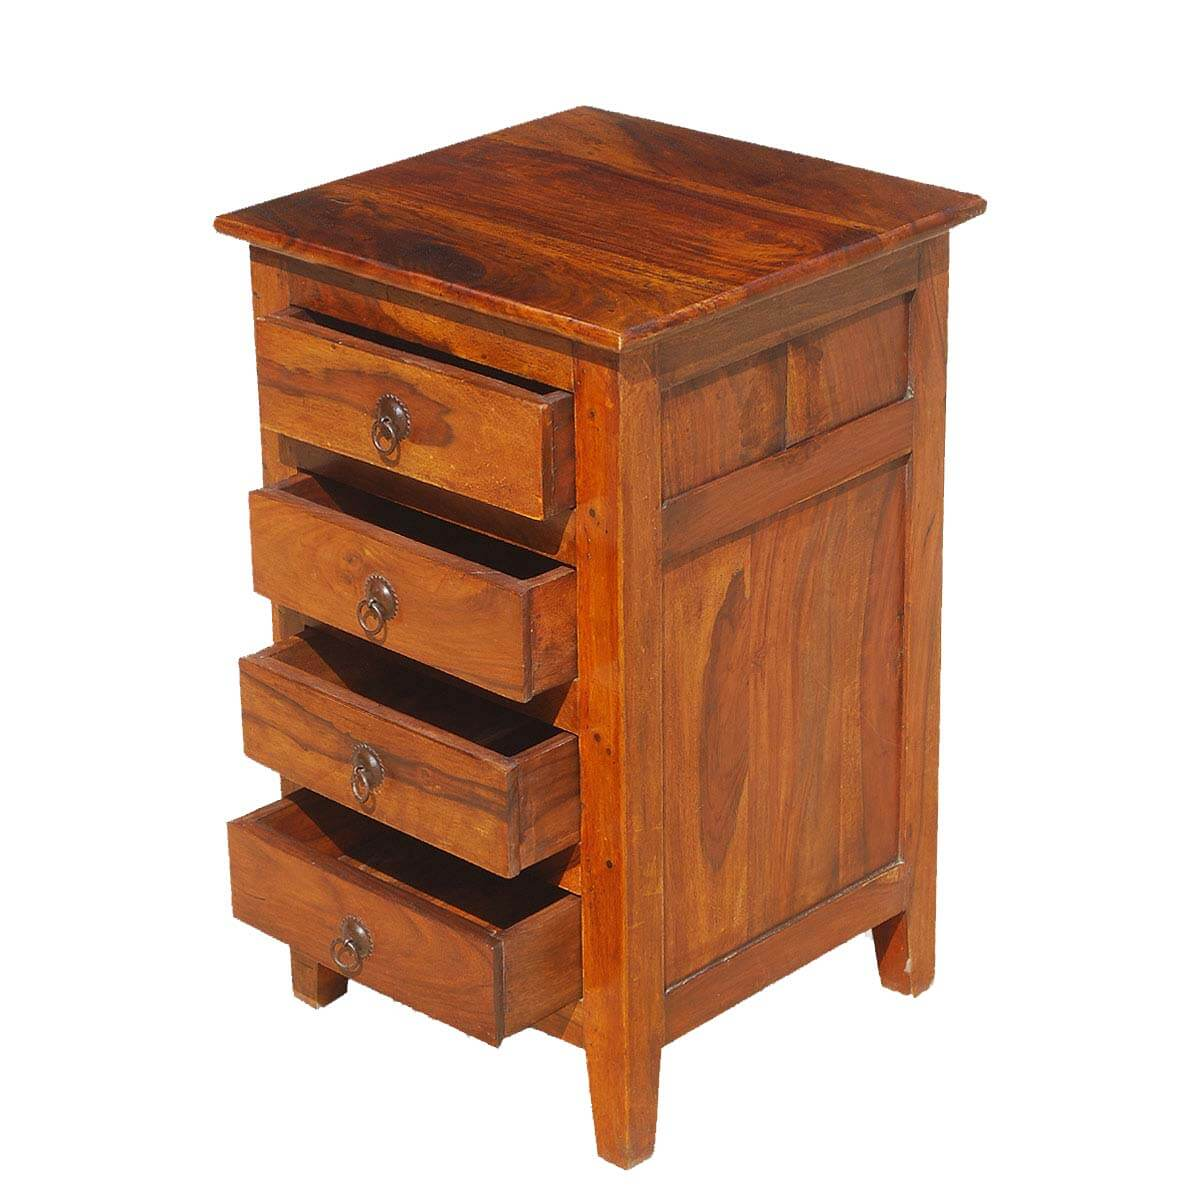 Oklahoma farmhouse rosewood mini chest of drawers end table for End tables with drawers